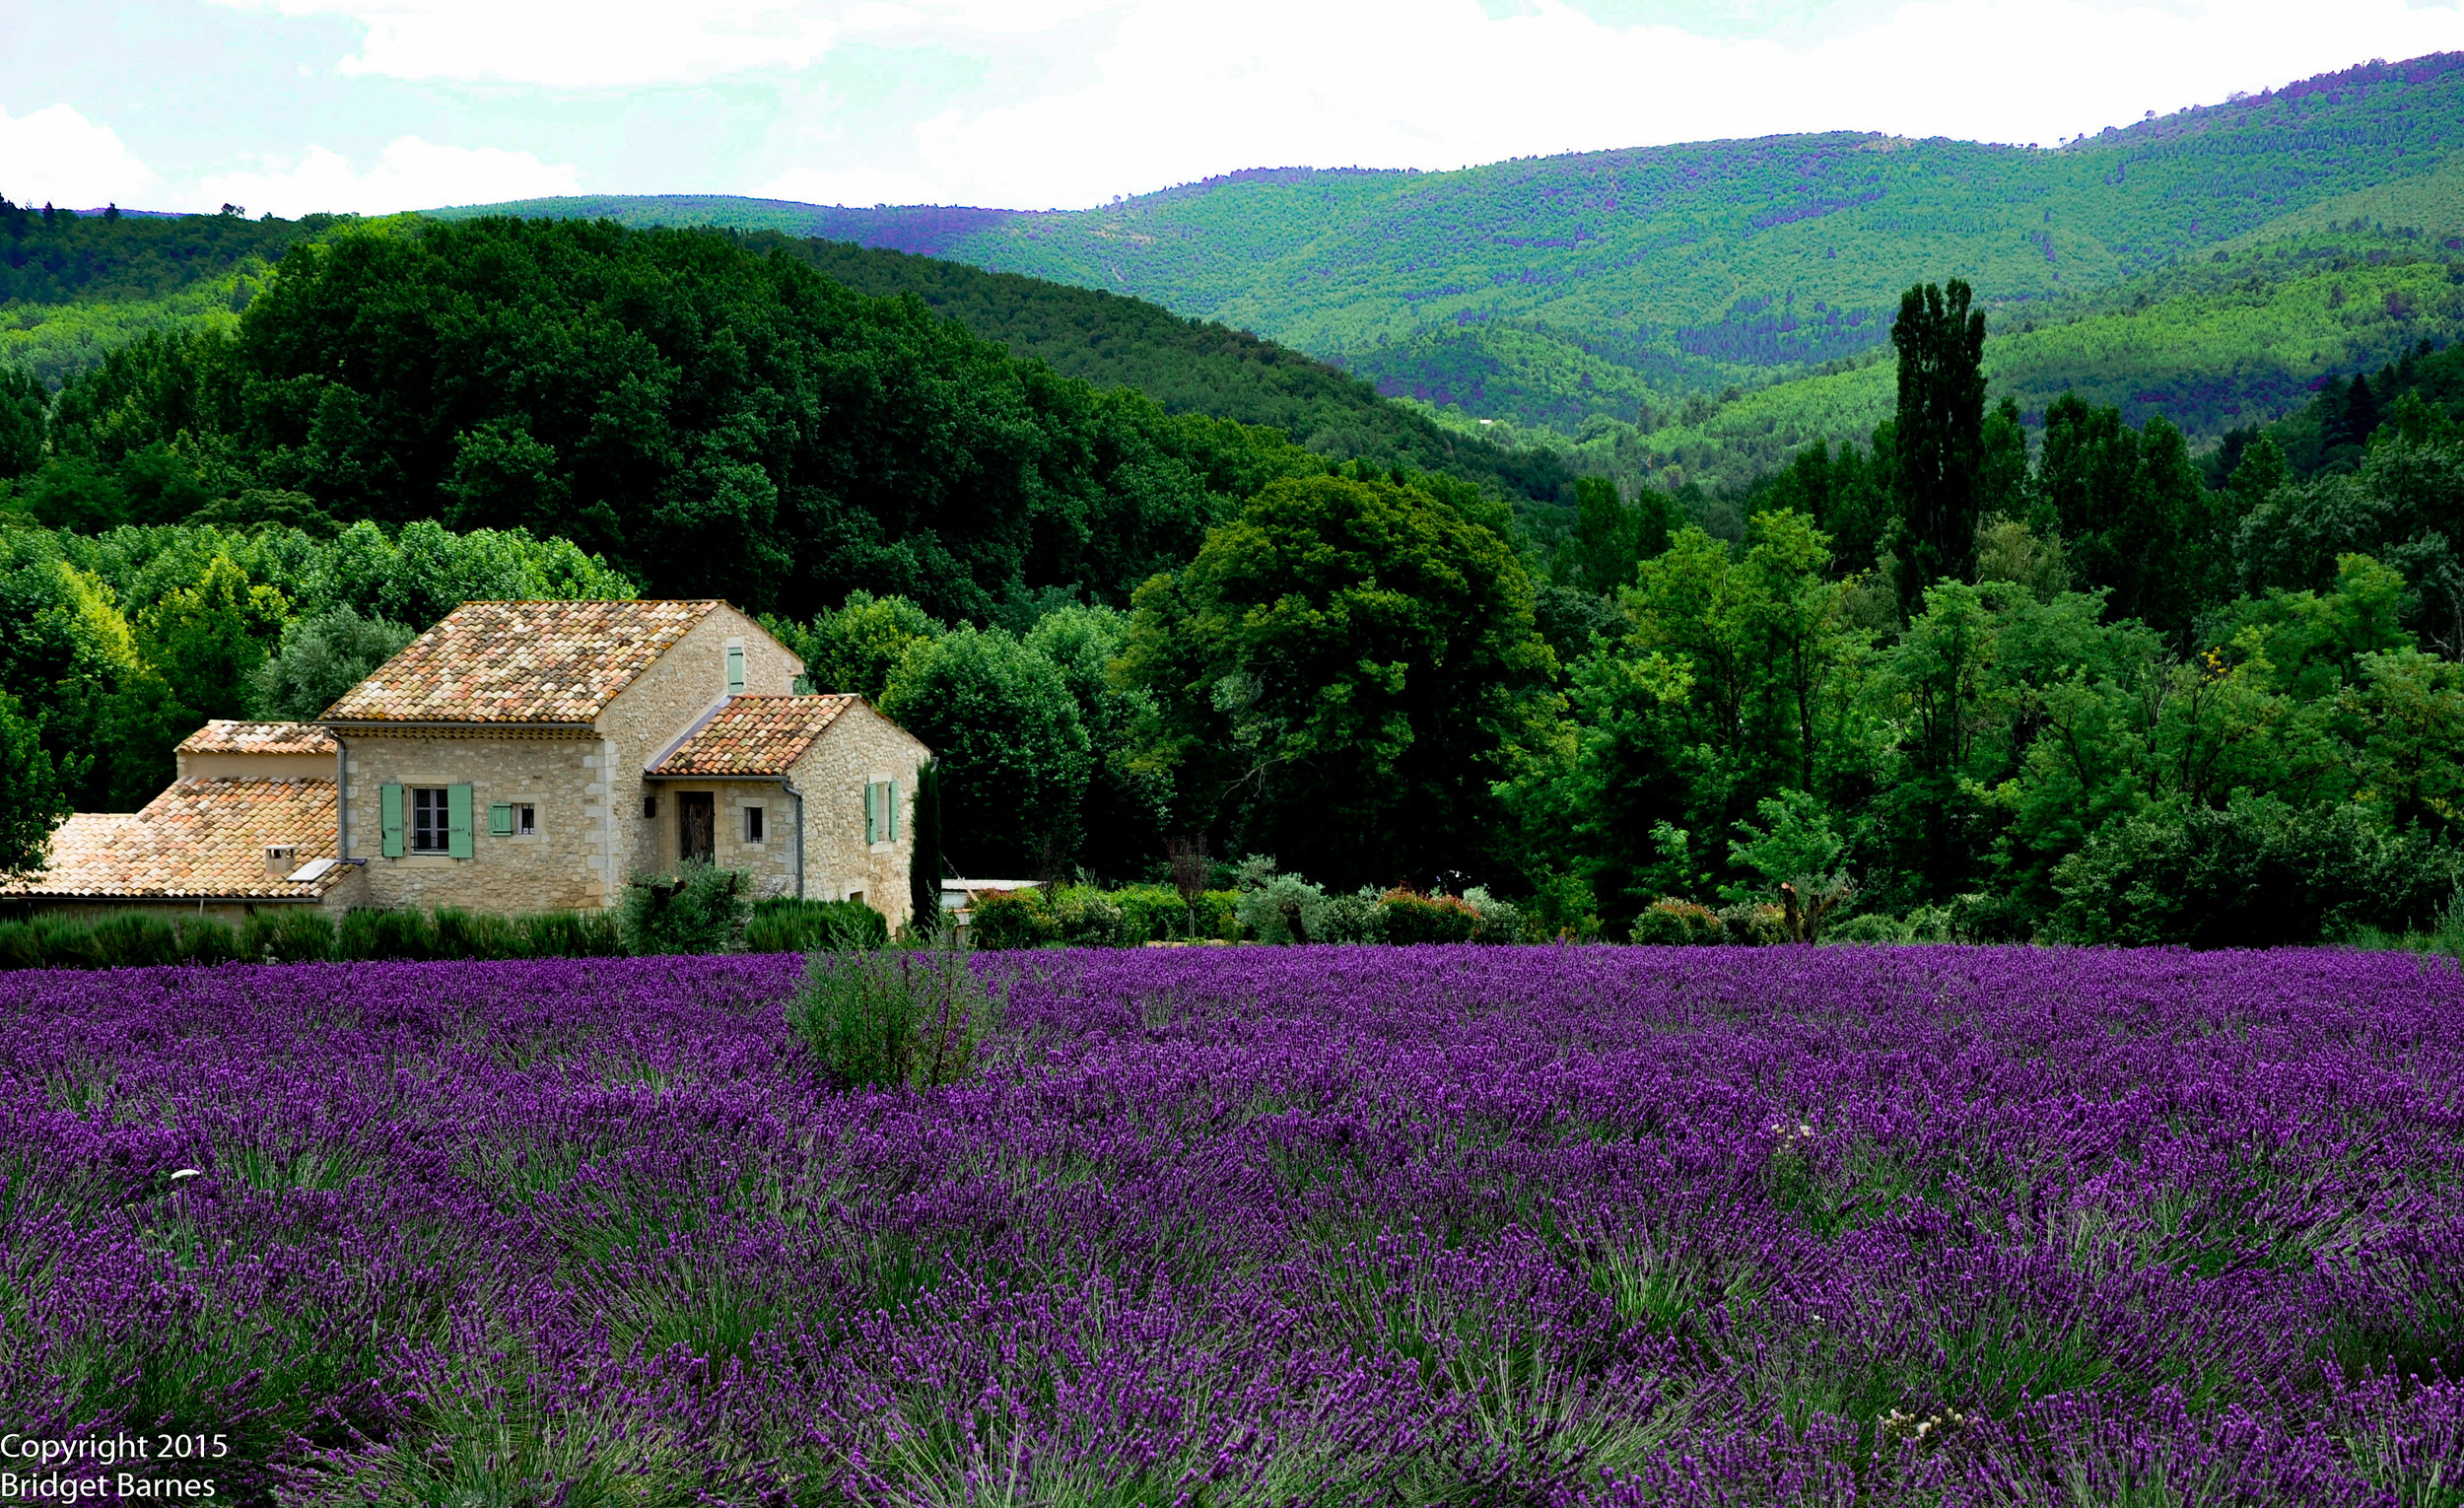 One of the many picturesque scenes we stumbled upon while driving across Provence.